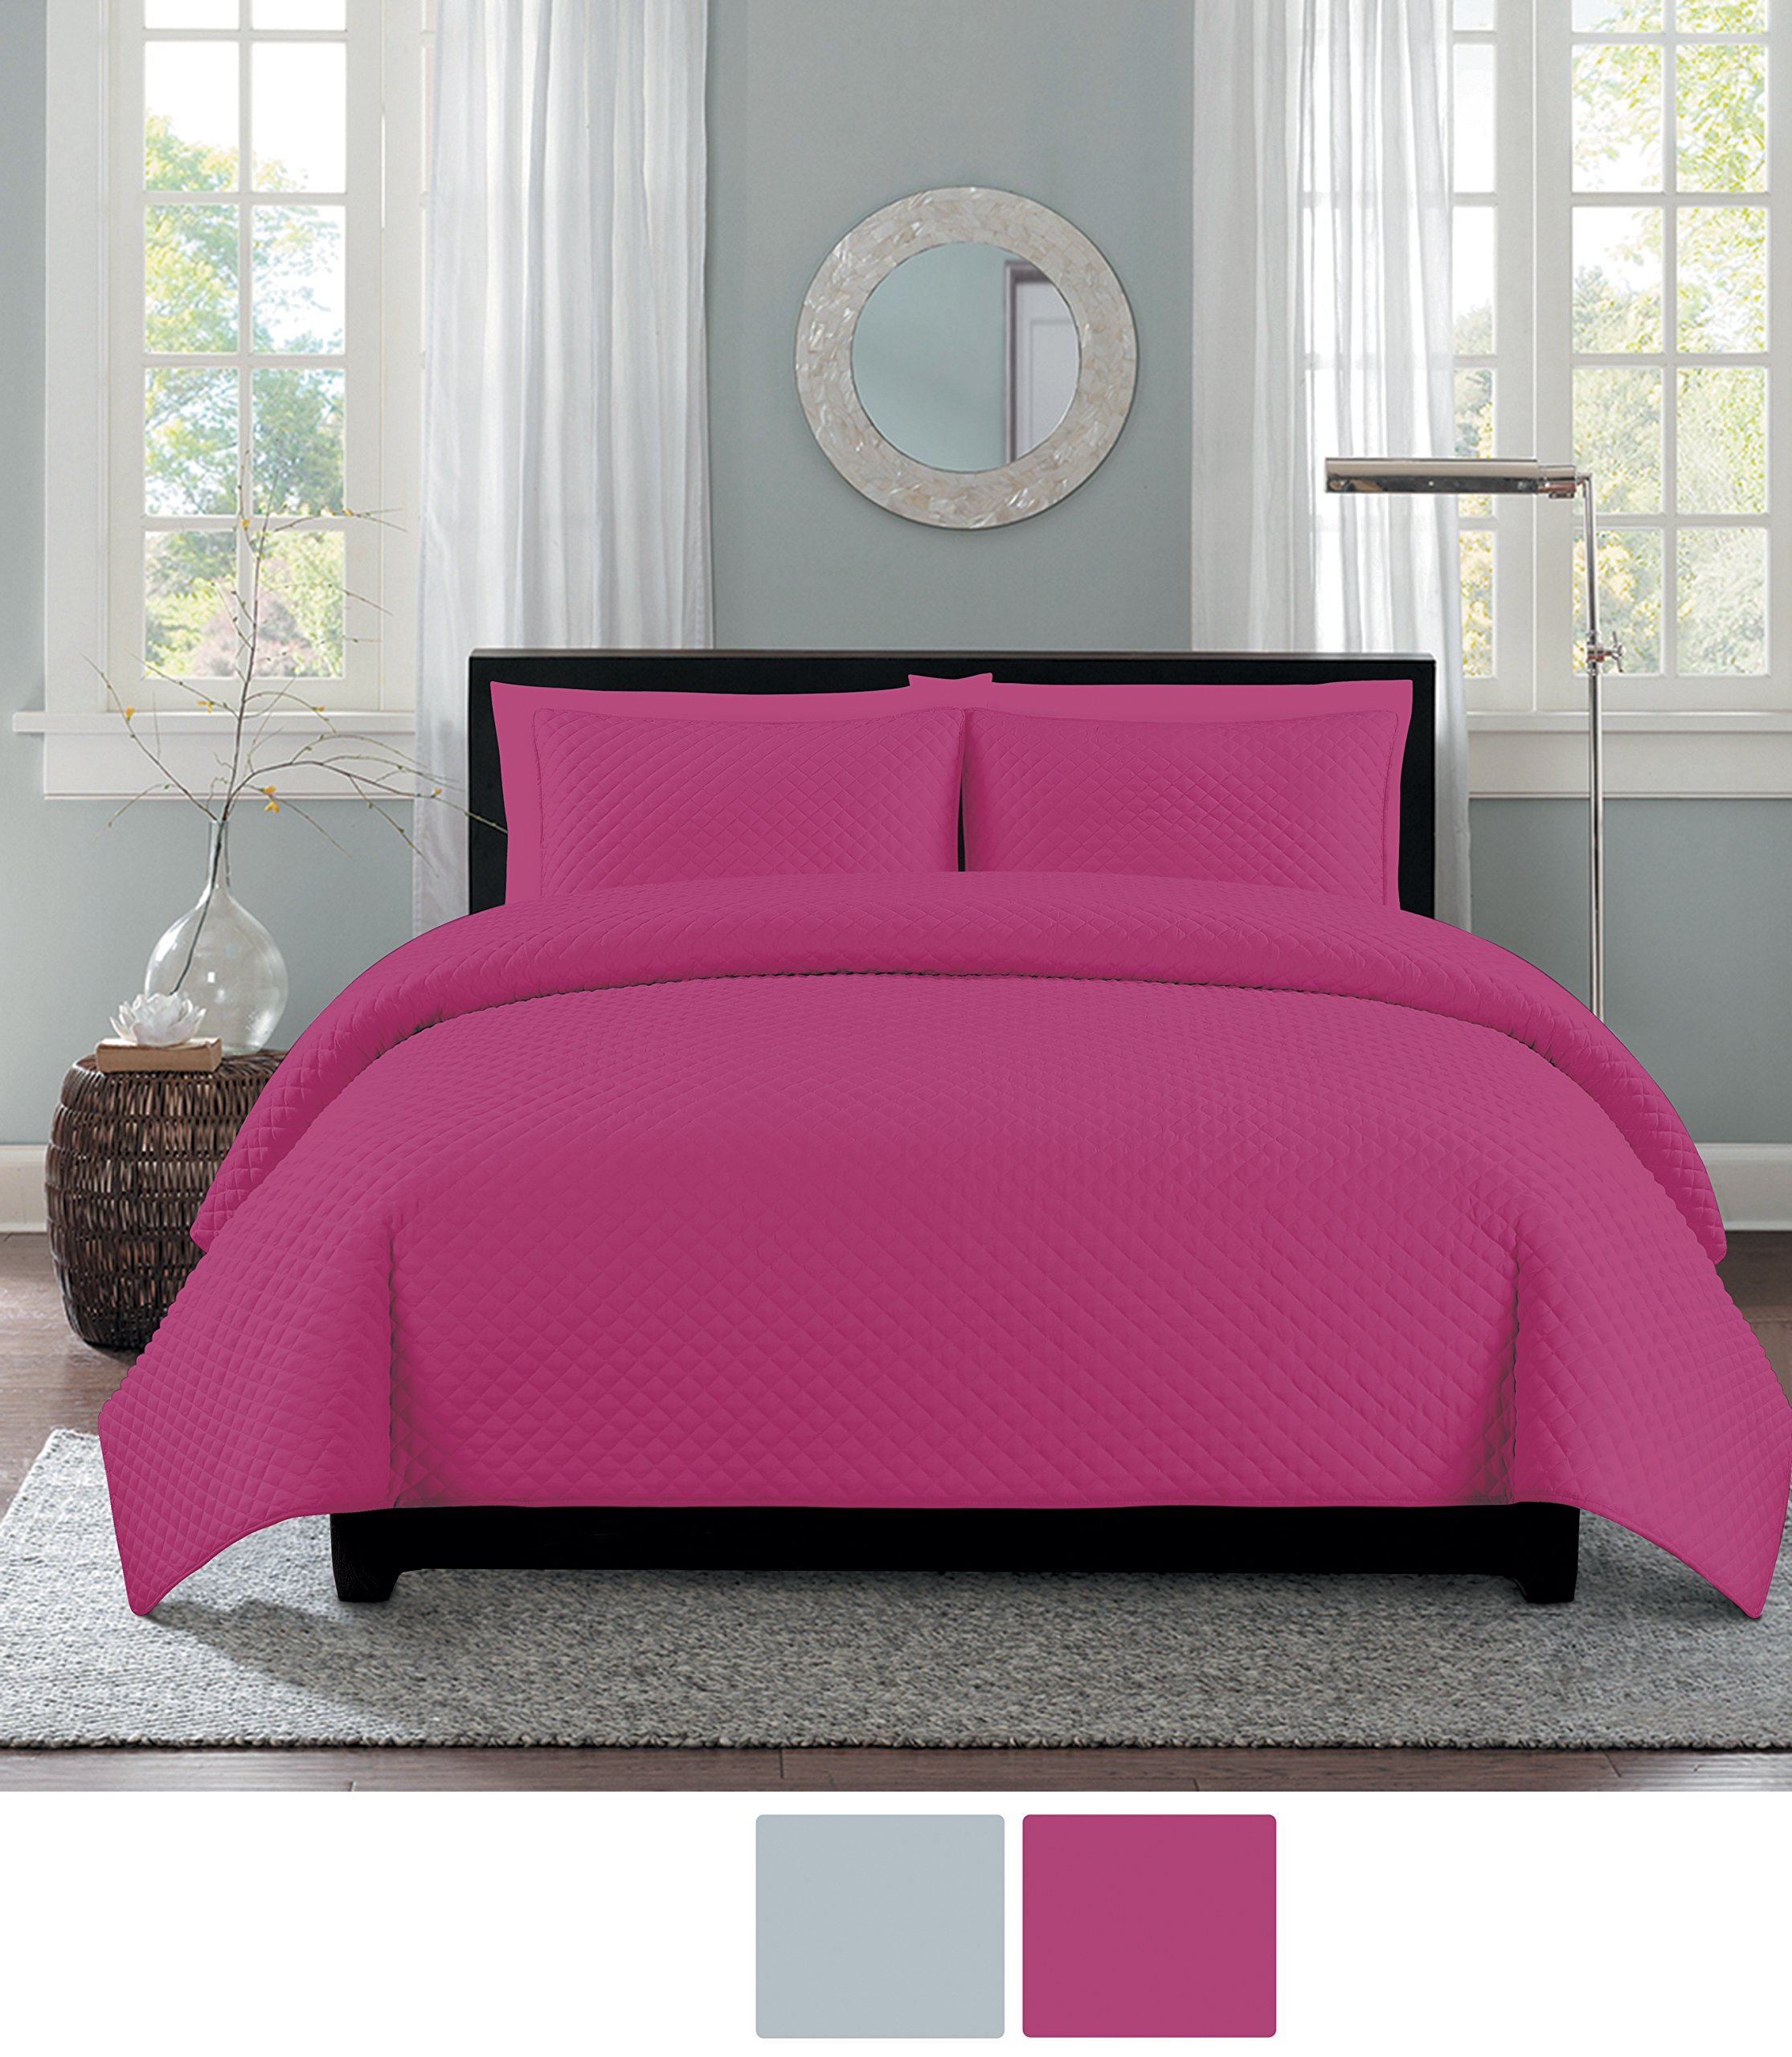 NC Home Fashions One Inch Diamond quilt set, Full/Queen, Fuchsia Rose